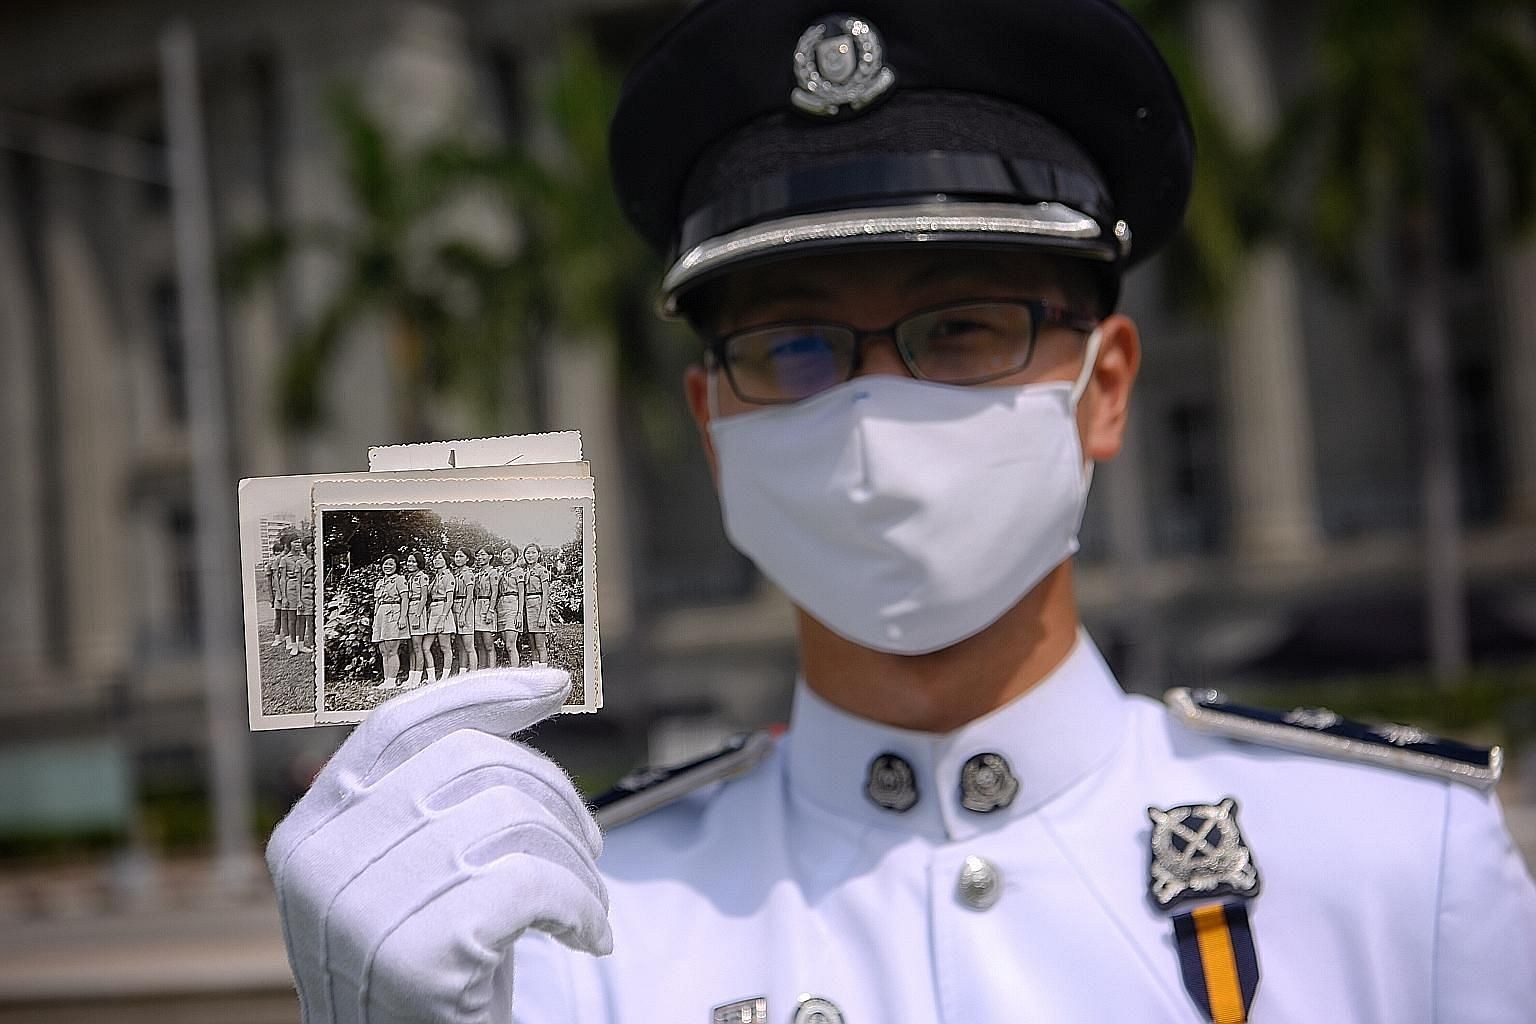 DSP Lee Ting Wei, 29, commander of the Singapore Police Force guard-of-honour contingent, with an old picture of his mother (second from right) in the Girl Guides. She took part in the 1973 National Day Parade.